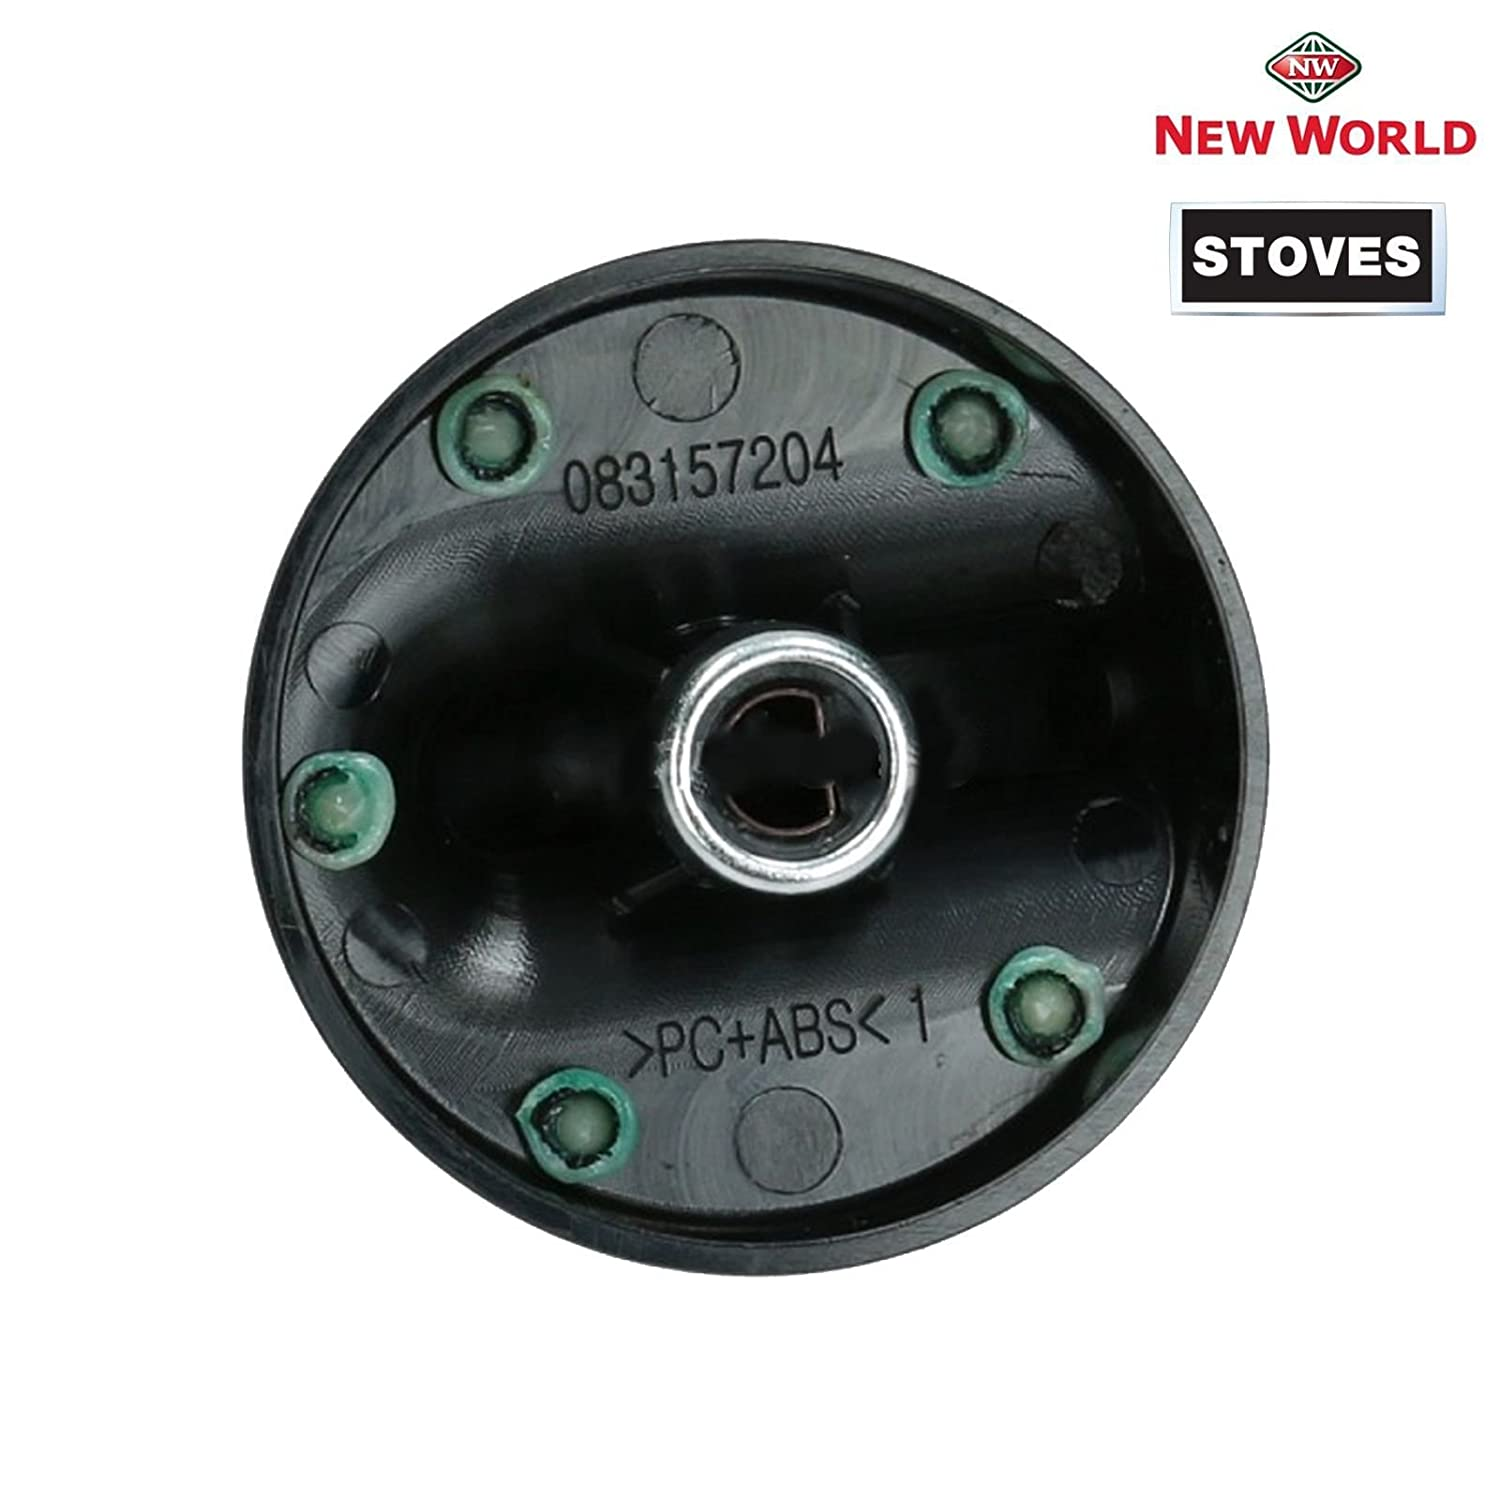 STOVES NEW WORLD Oven Cooker Temperature Knob Switch Silver Black 083157008